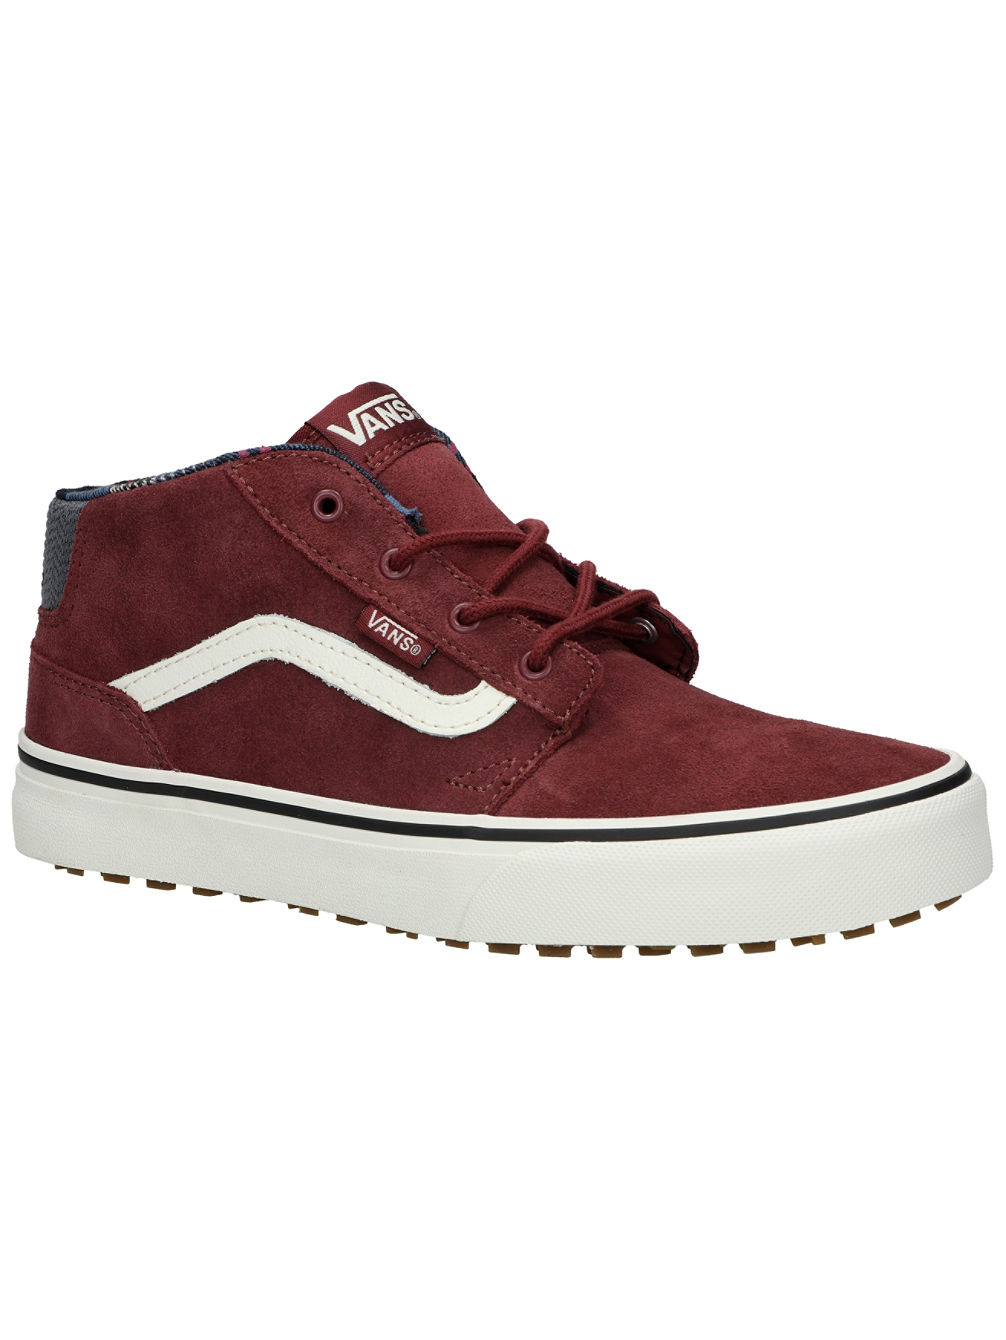 77cb7a3340 Buy Vans Chapman Mid MTE Sneakers Boys online at Blue Tomato